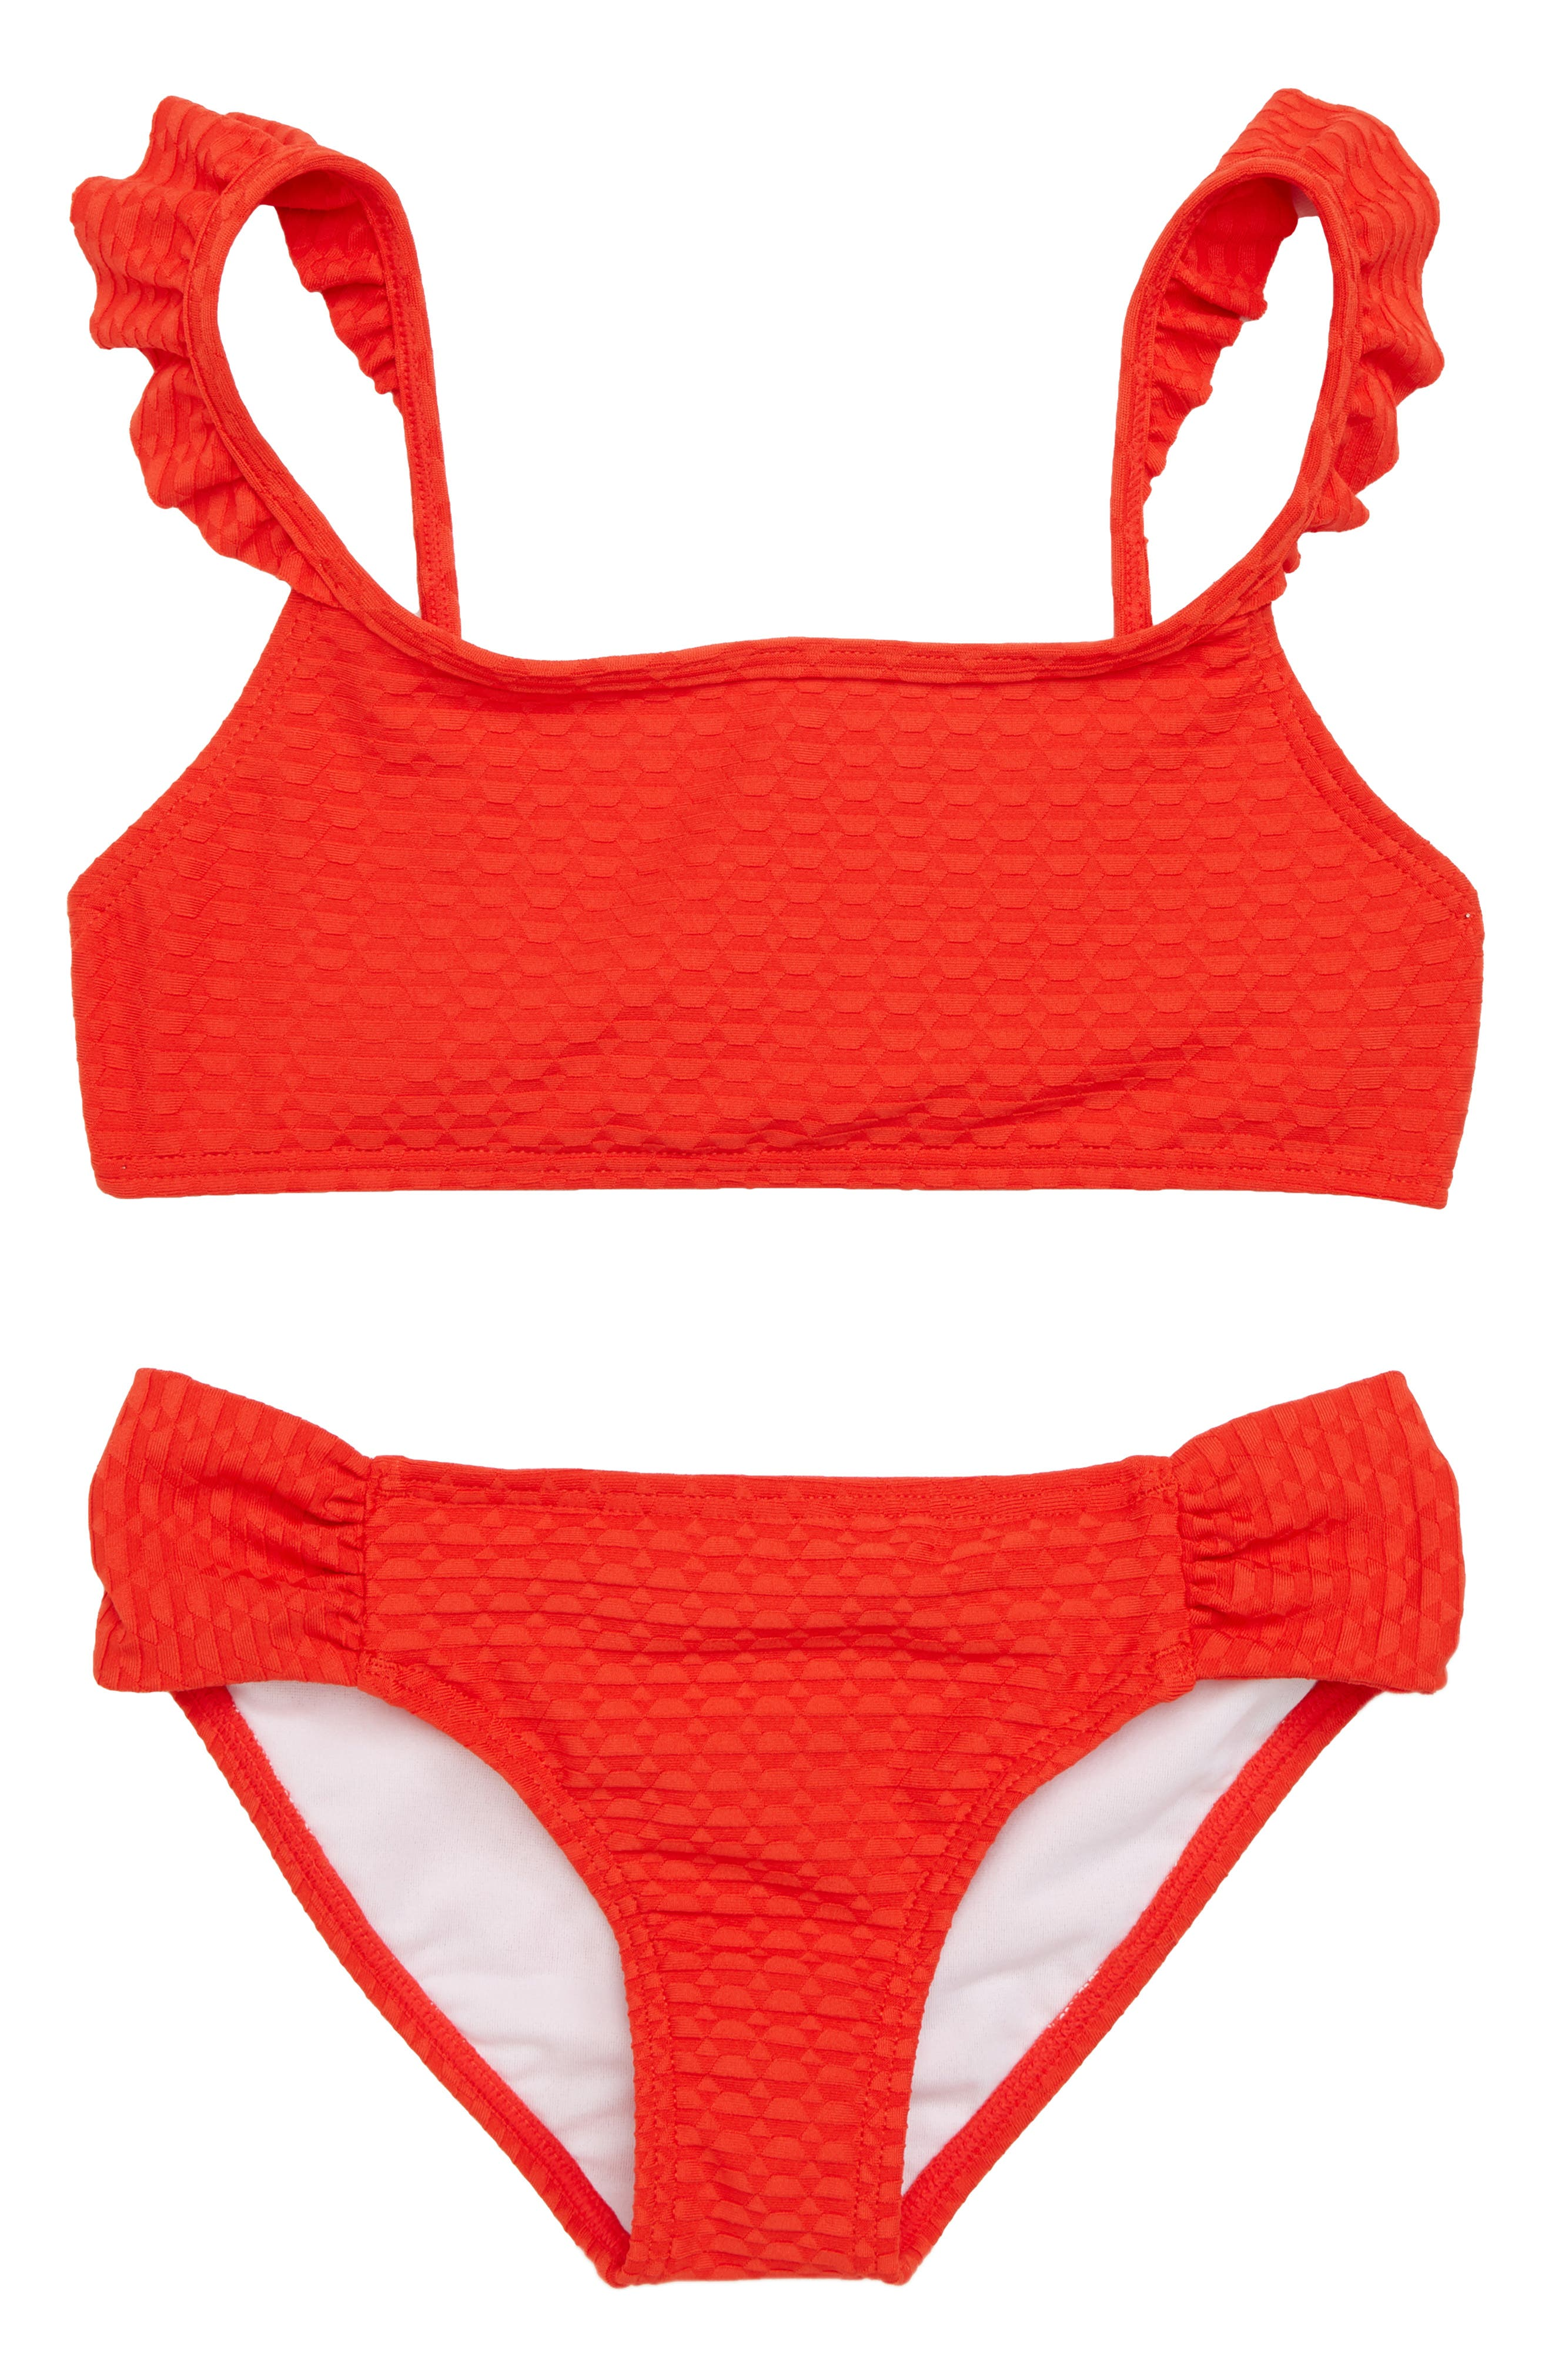 Makin Shapes Two-Piece Swimsuit,                             Main thumbnail 1, color,                             951